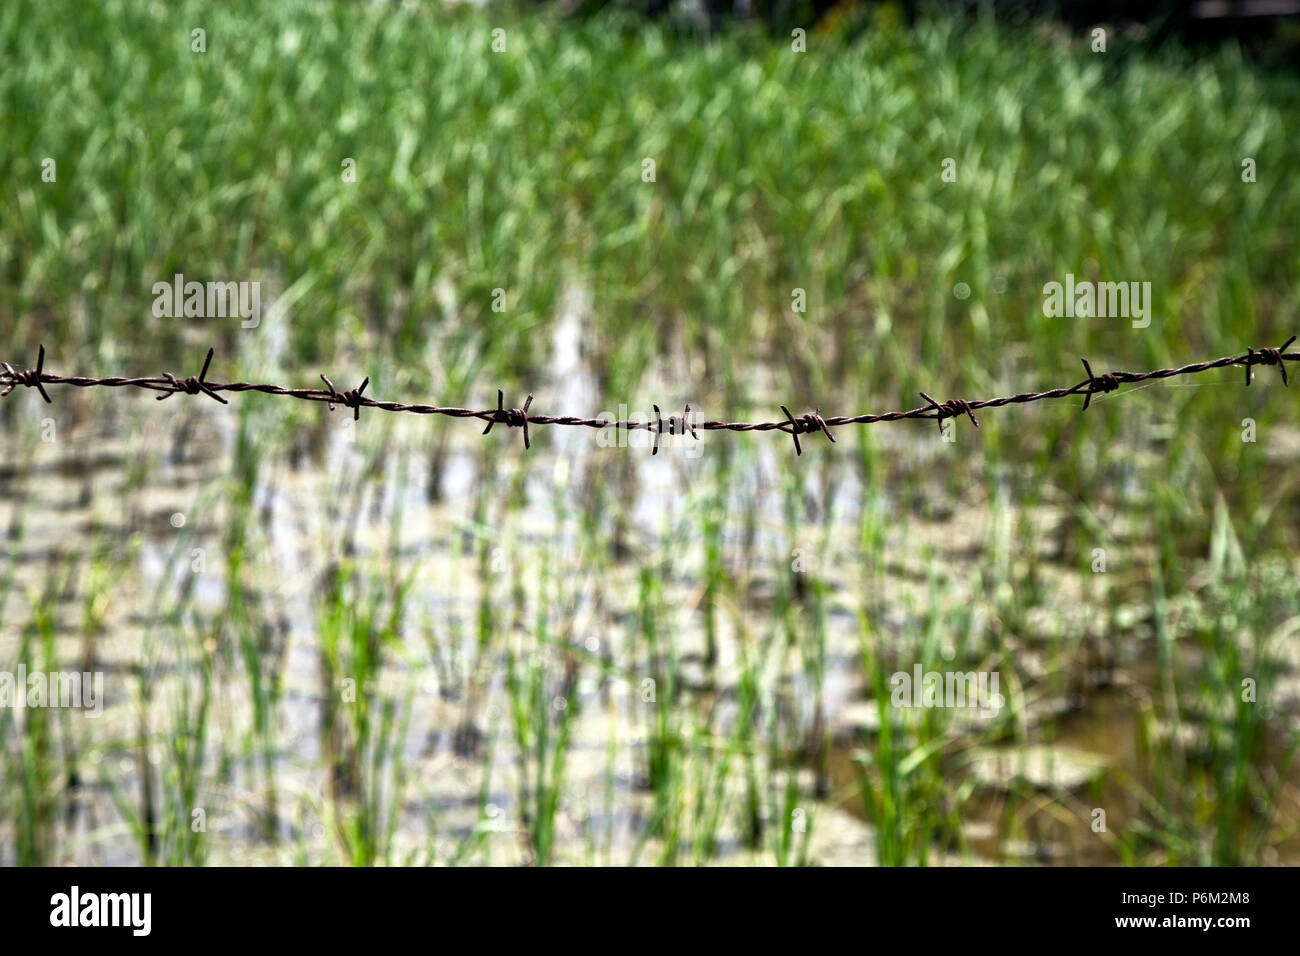 Barbed wire marks boundry of rice field. Abstract images and close ups of everyday life in the world - Stock Image